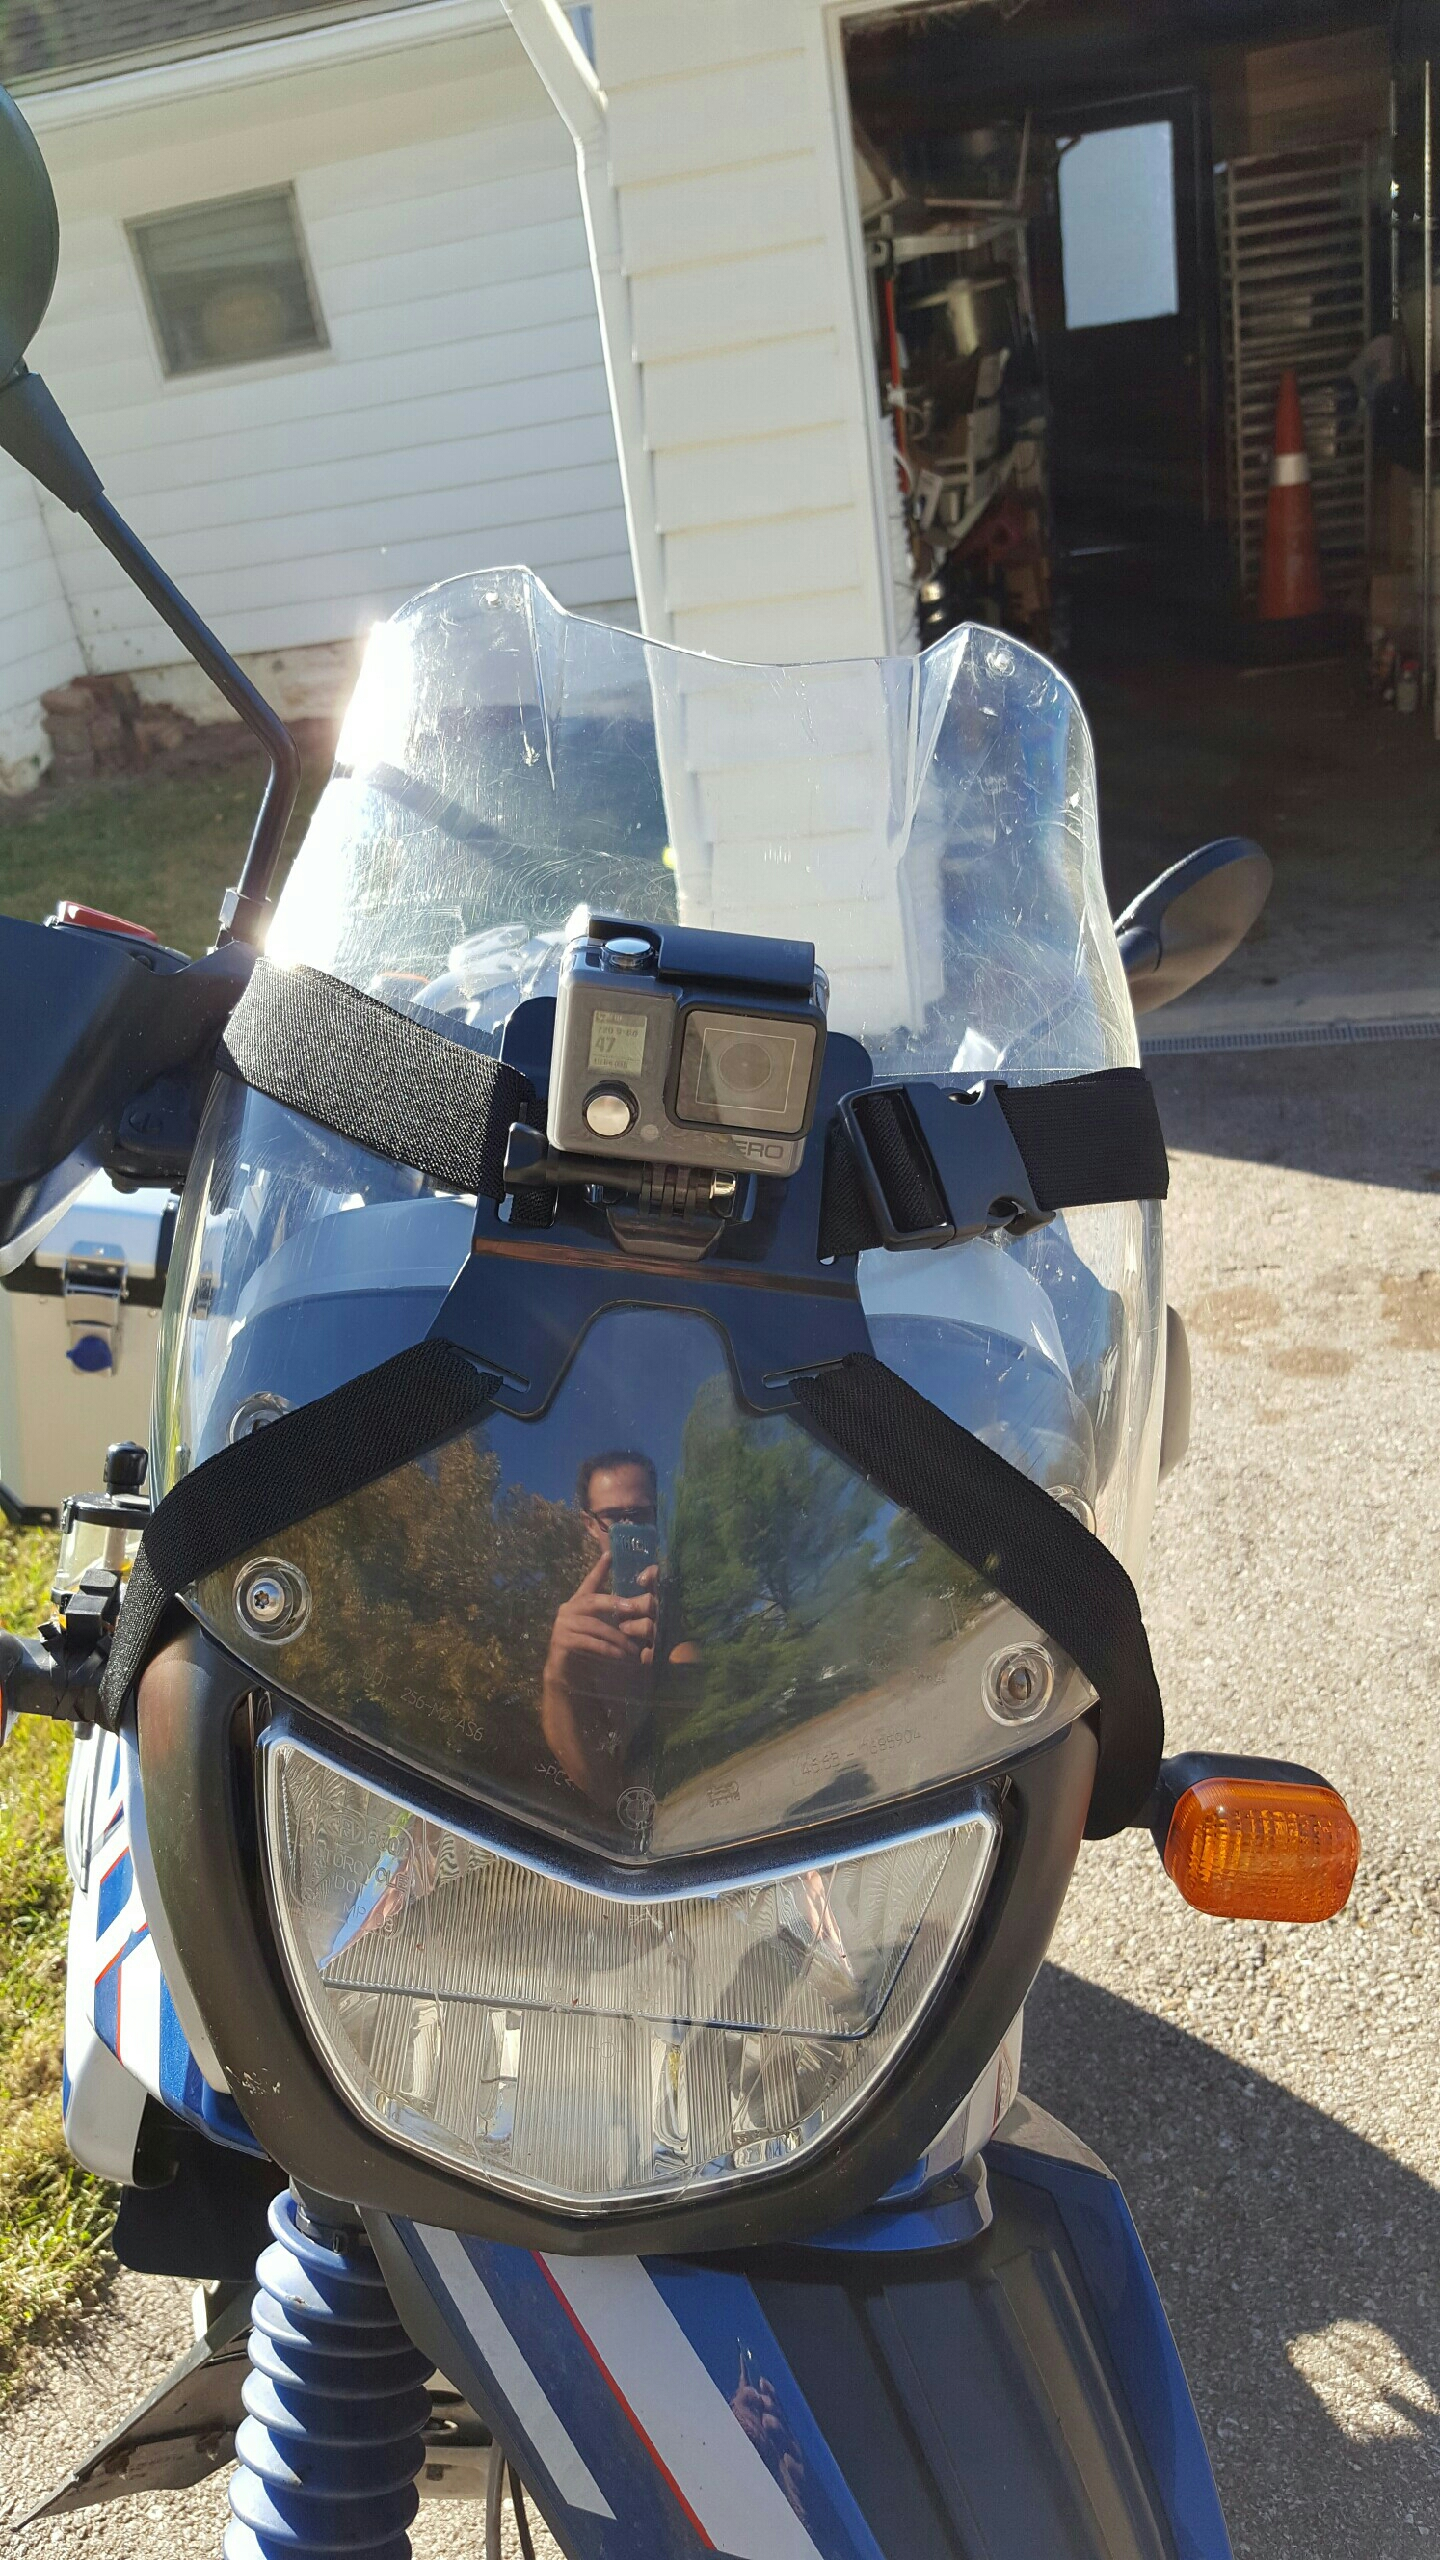 Go pro mount (aka chest strapped to the front) also kind of janky.